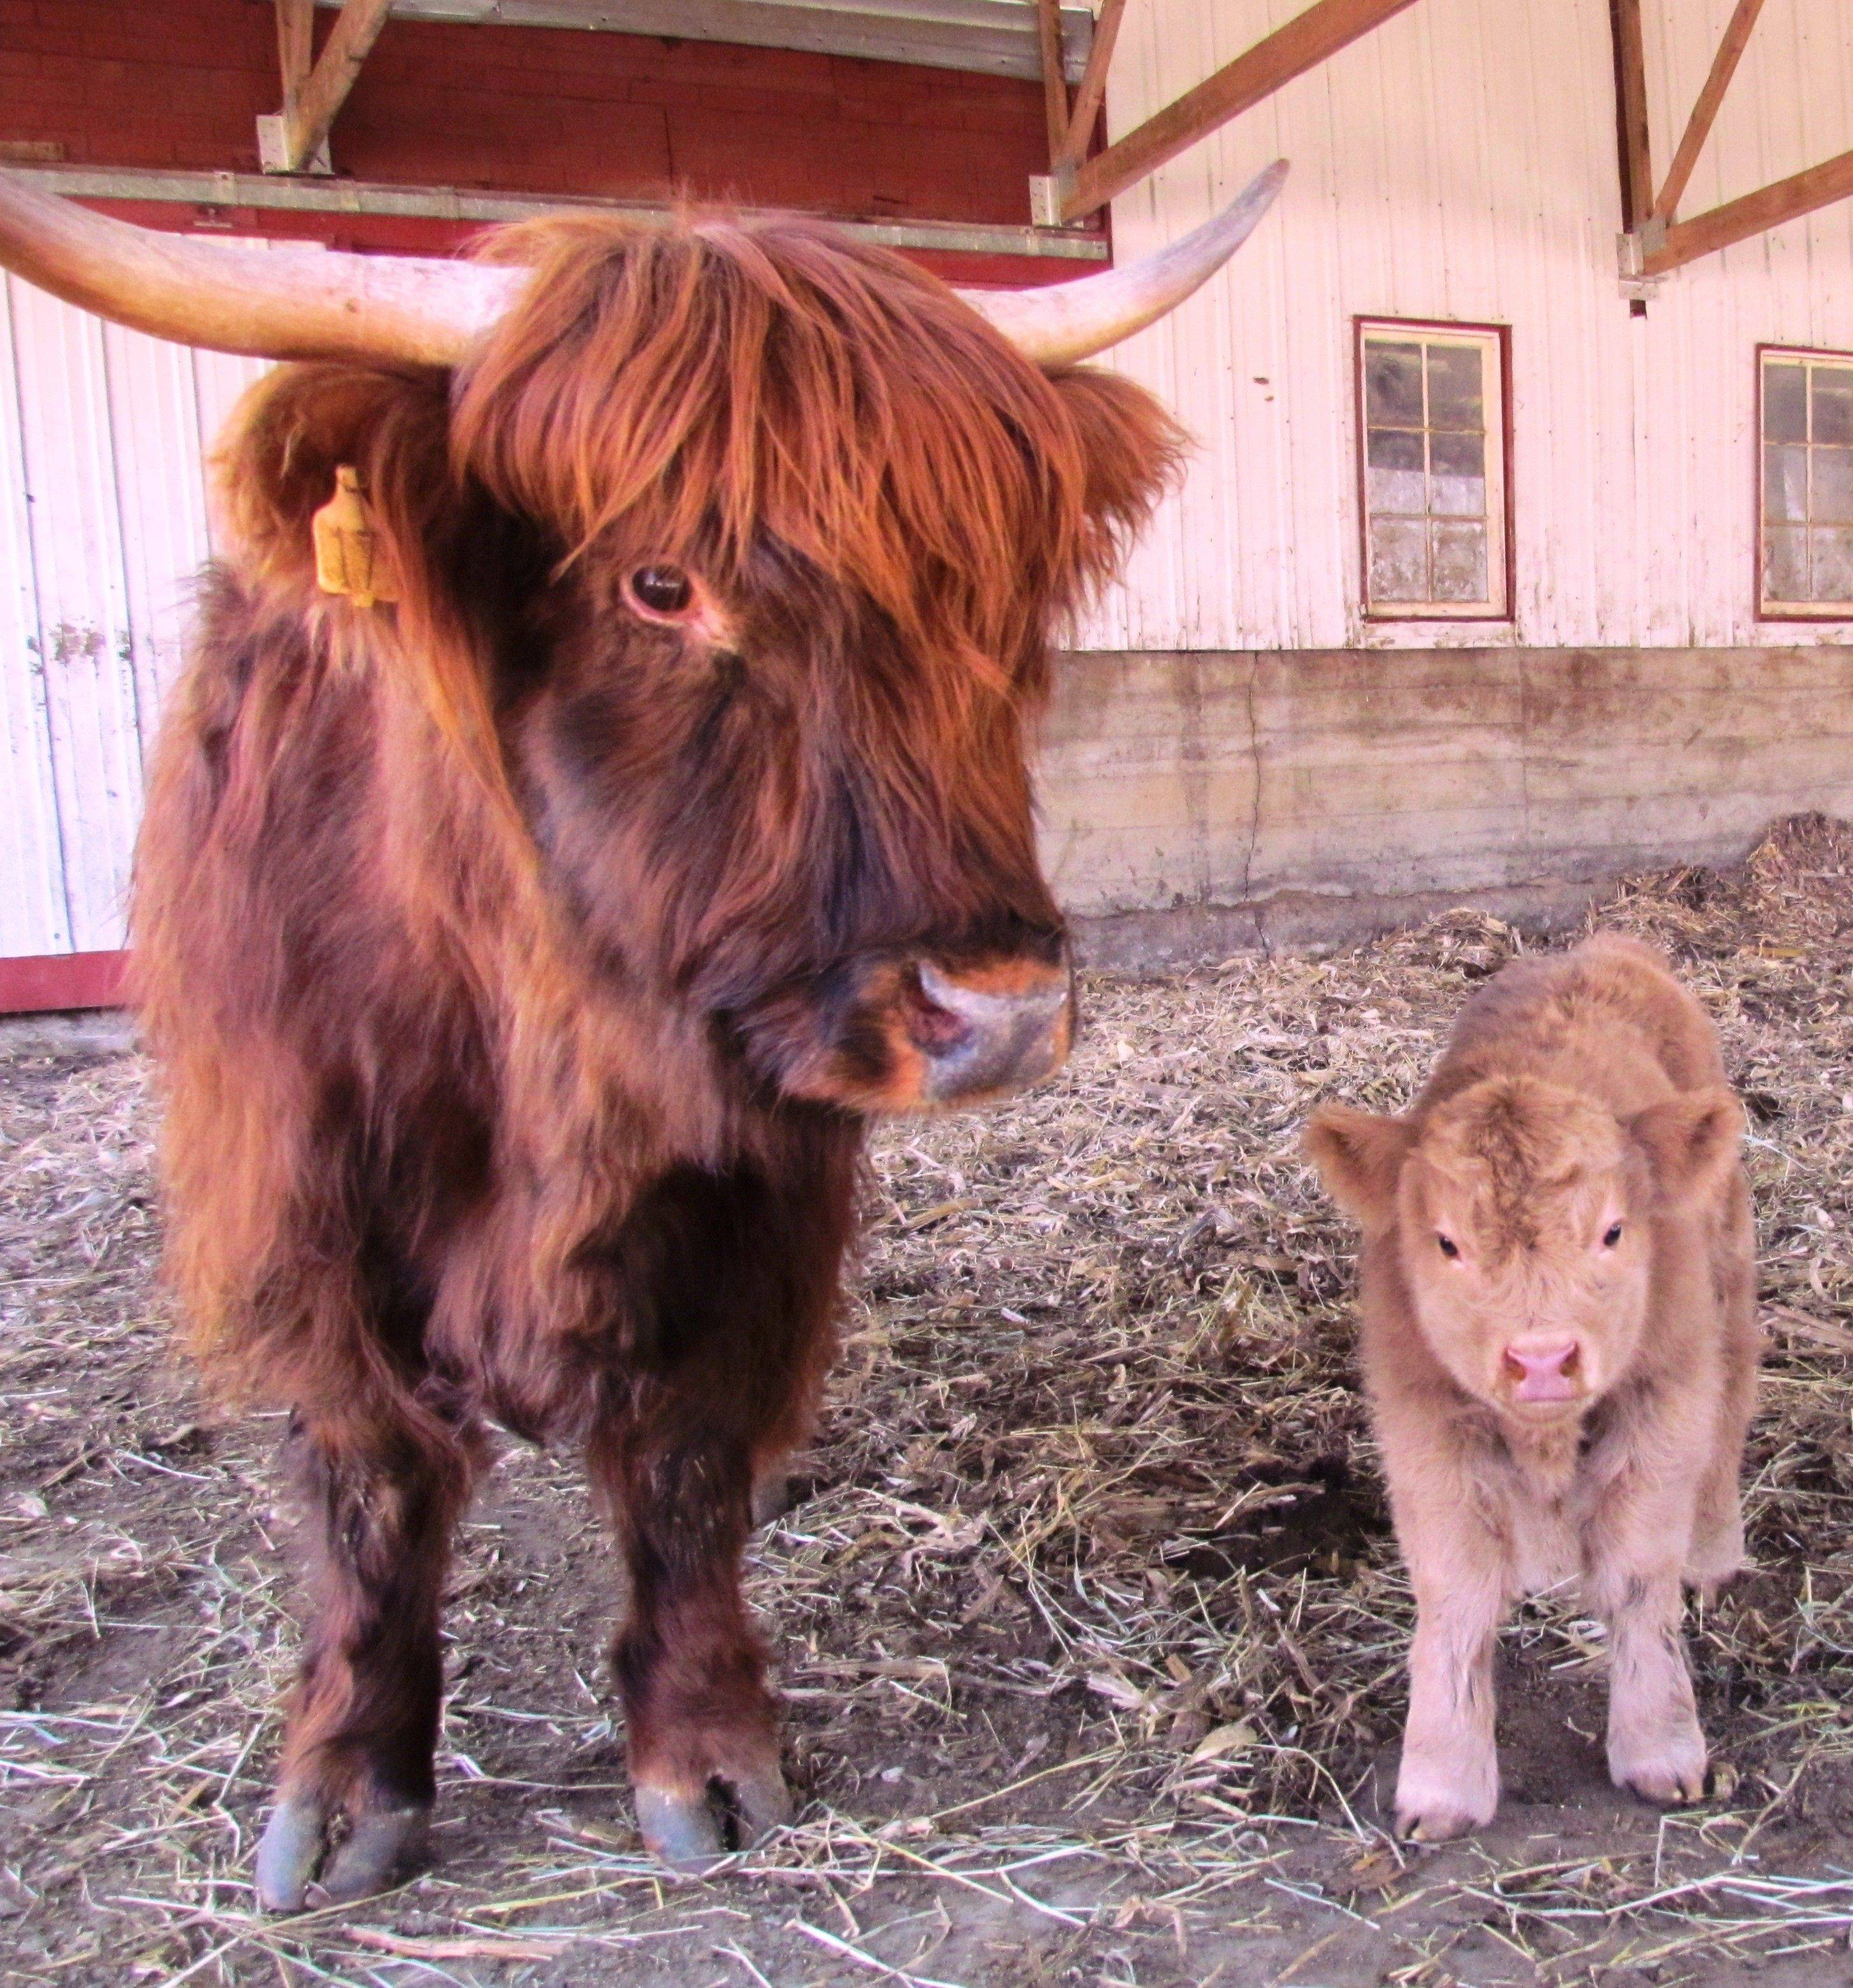 At Brambleberry Farms, you can get up close with the farm animals, evening feeding them if you like.